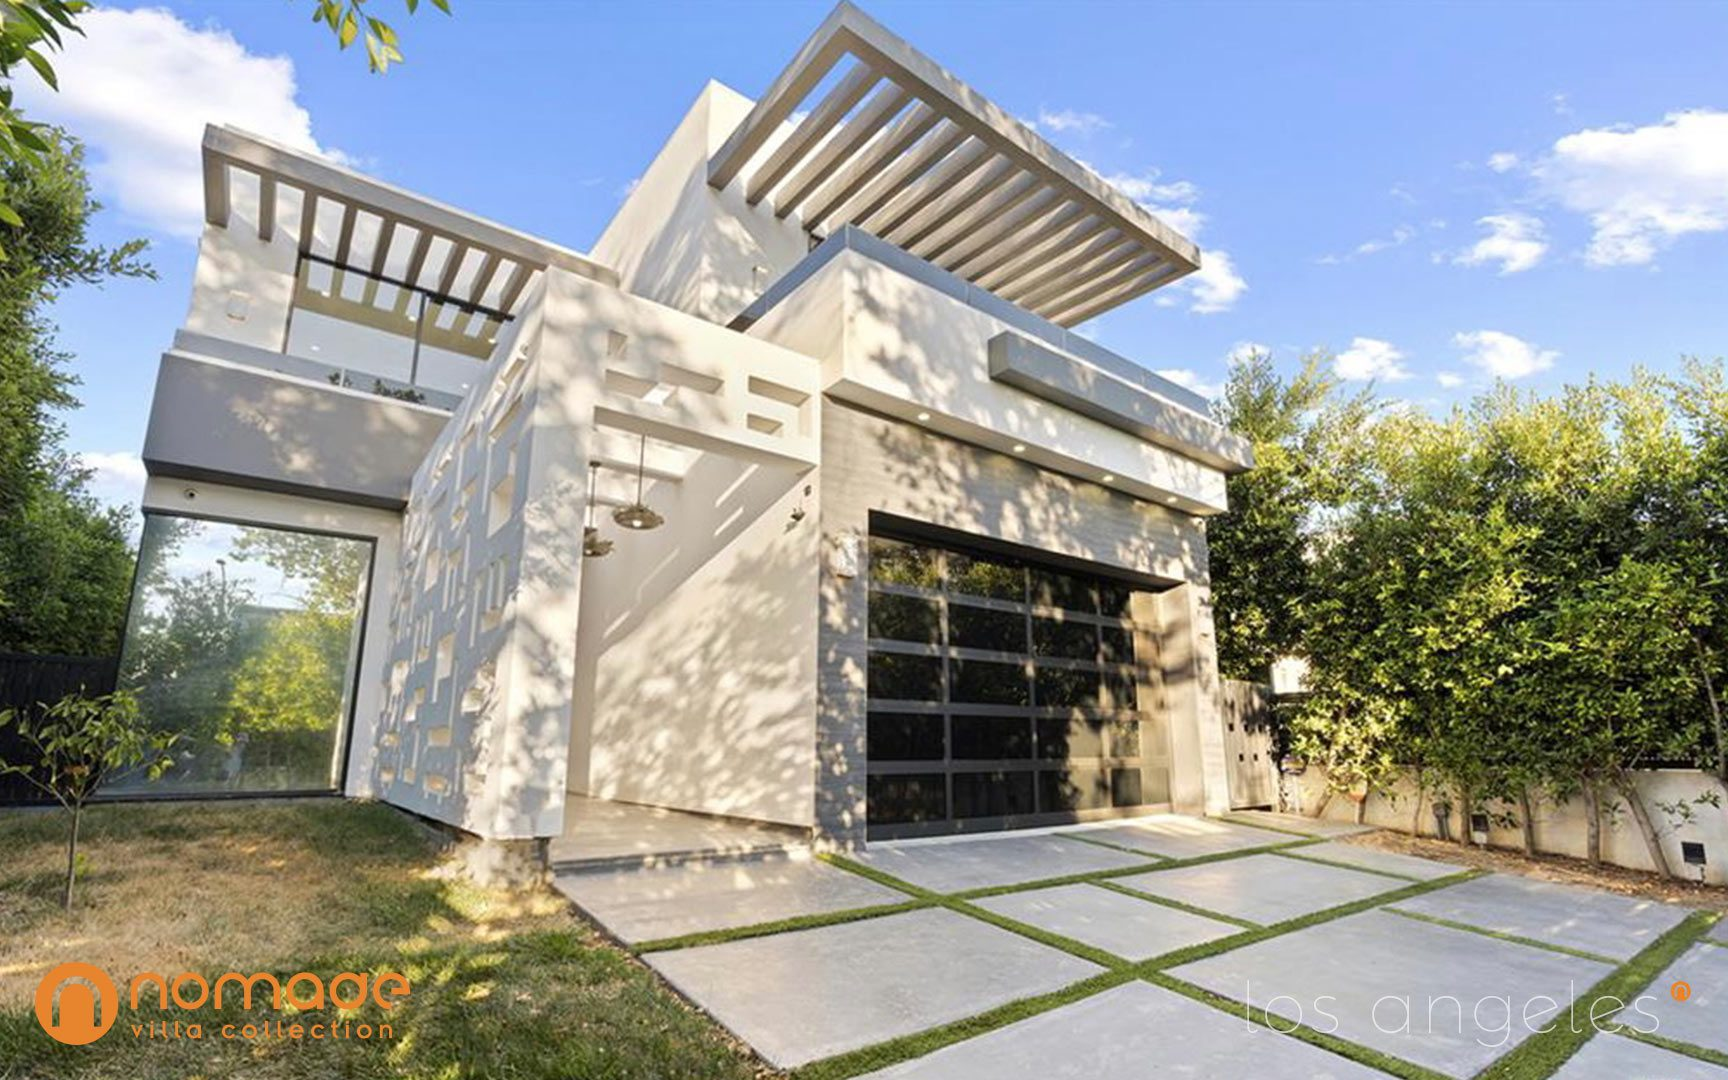 Martel Villa - Secluded luxury Los Angeles mansion rental by Nomade Villa Collection